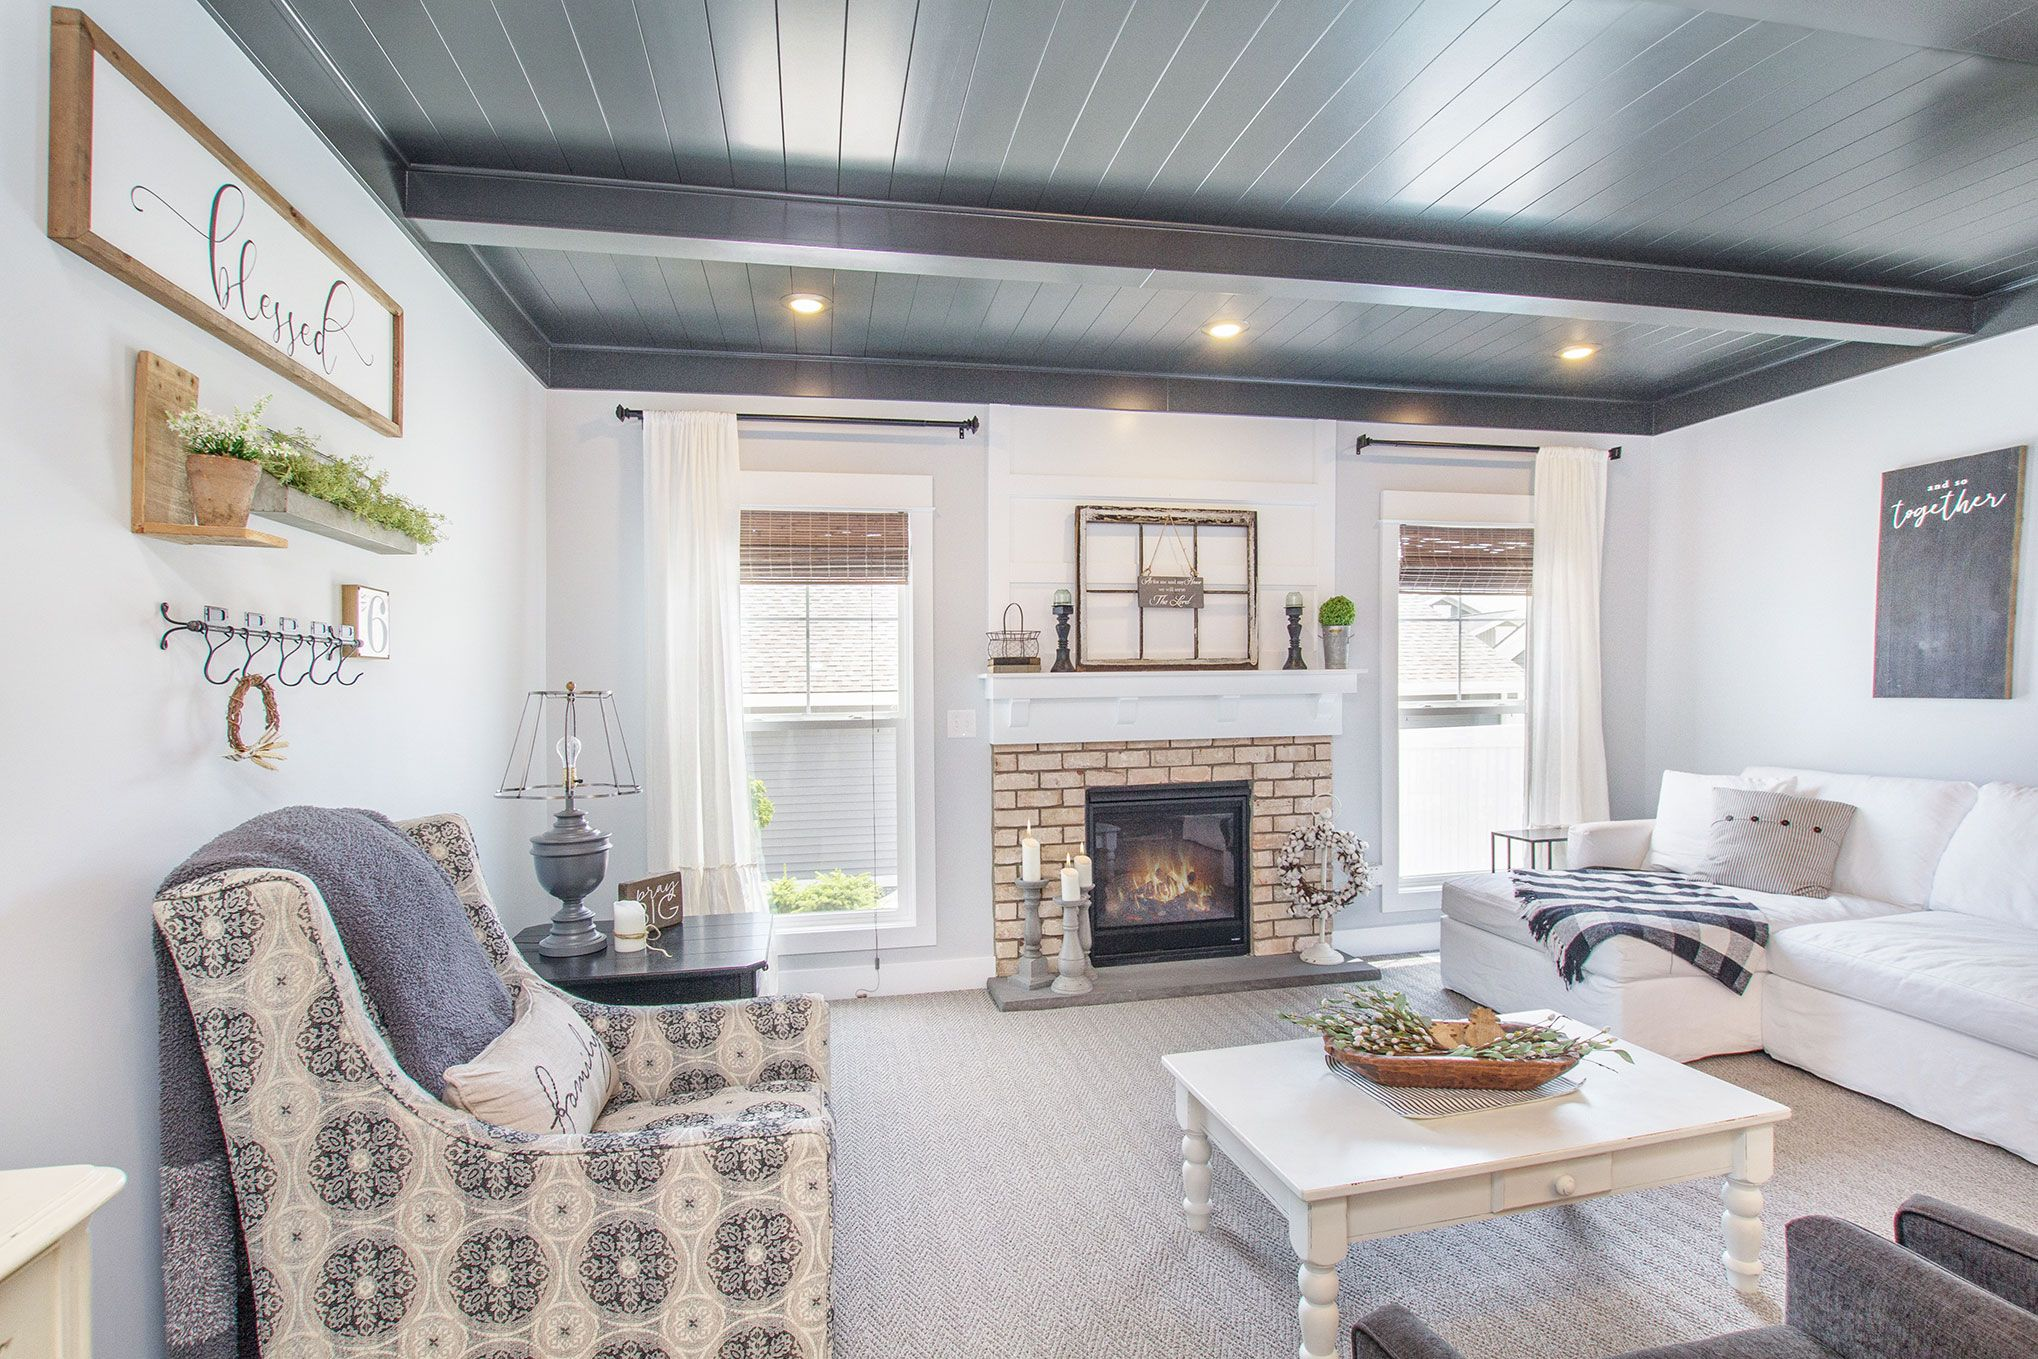 Living Area featured in The Macatawa Legends Townhomes By Eastbrook Homes Inc. in Grand Rapids, MI